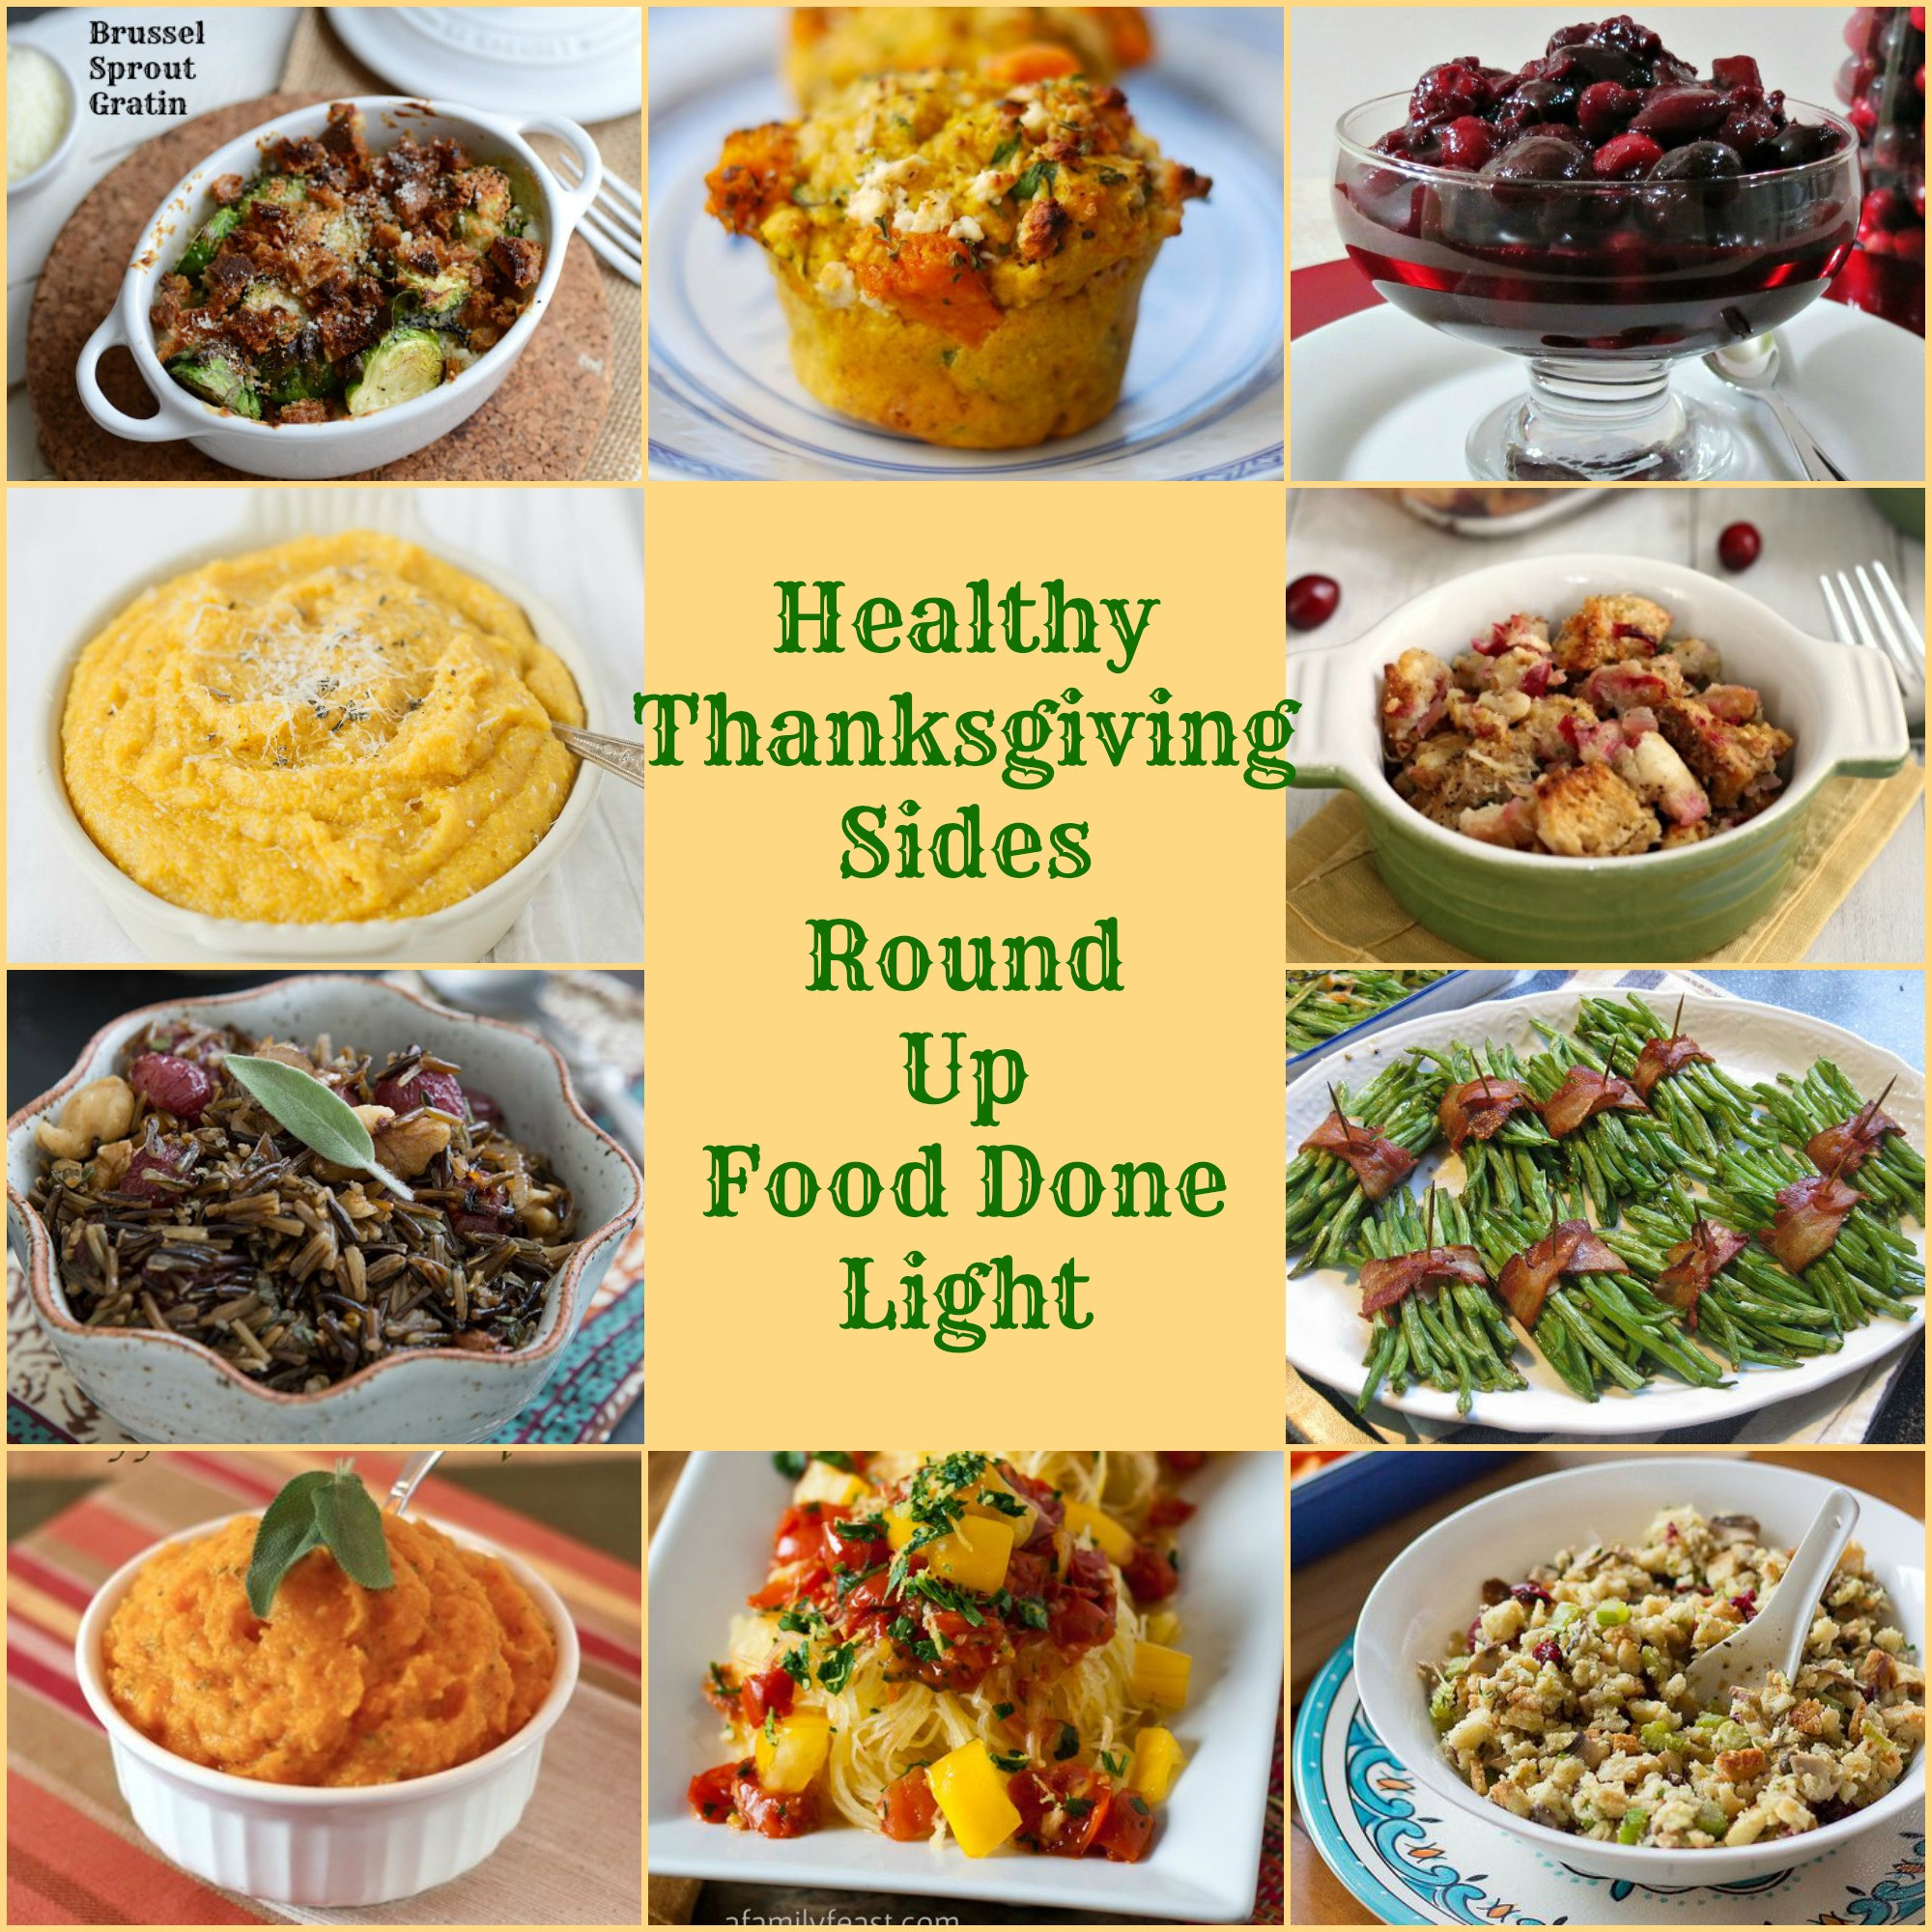 Healthy Thanksgiving Side Dish Recipes  Healthy Thanksgiving Sides Recipe Round Up Food Done Light